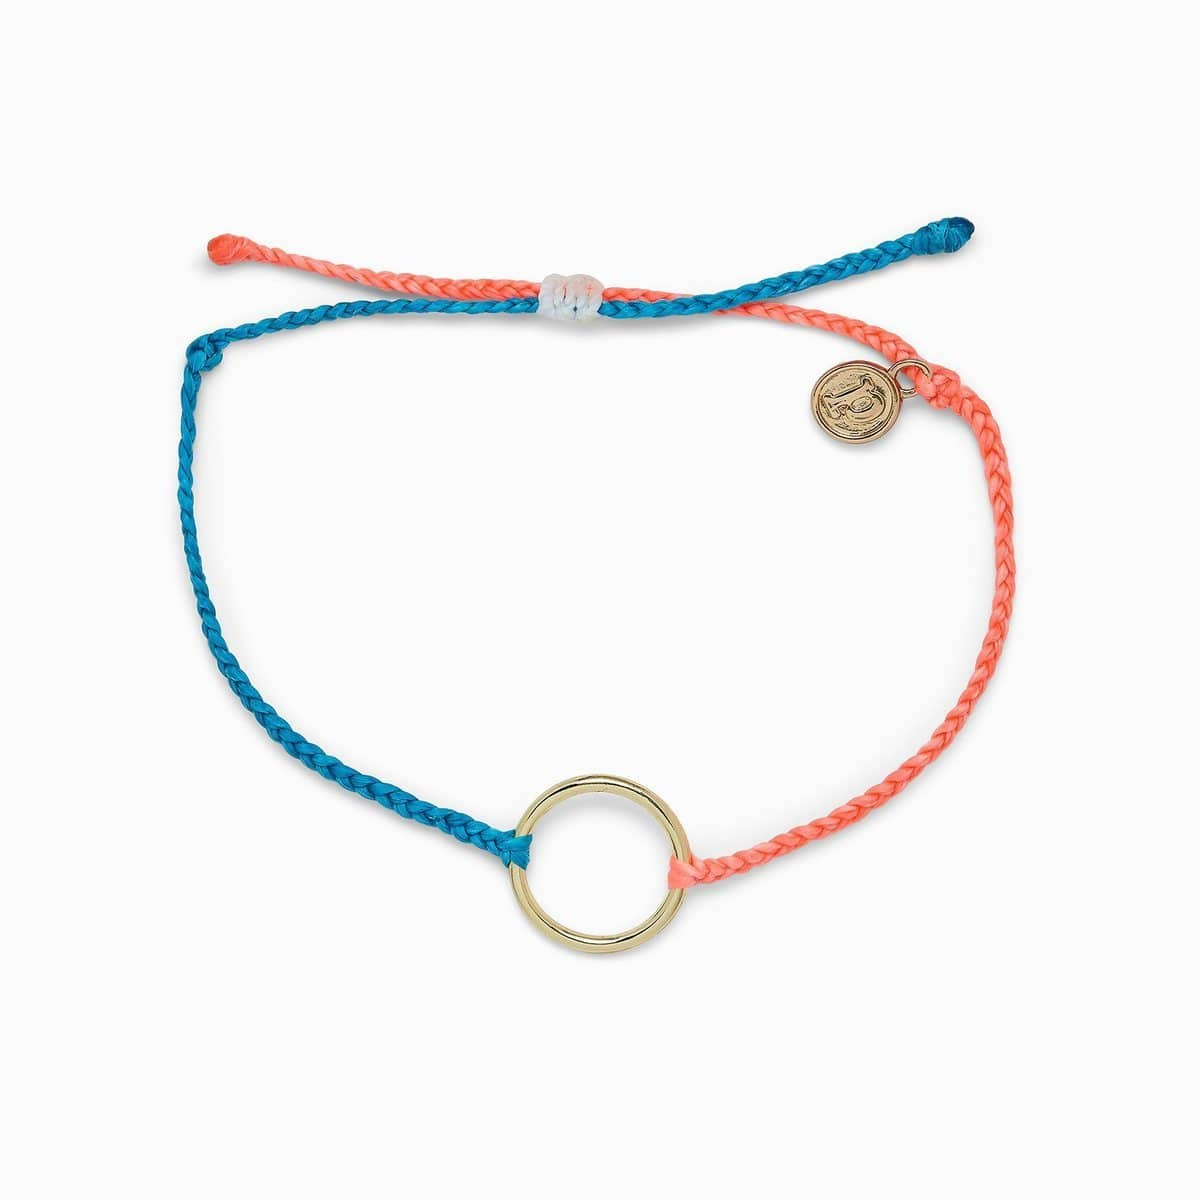 Two Tone Gold Circle Charm Bracelet - Neon Blue/Strawberry Pura Vida Bracelets Jewelry